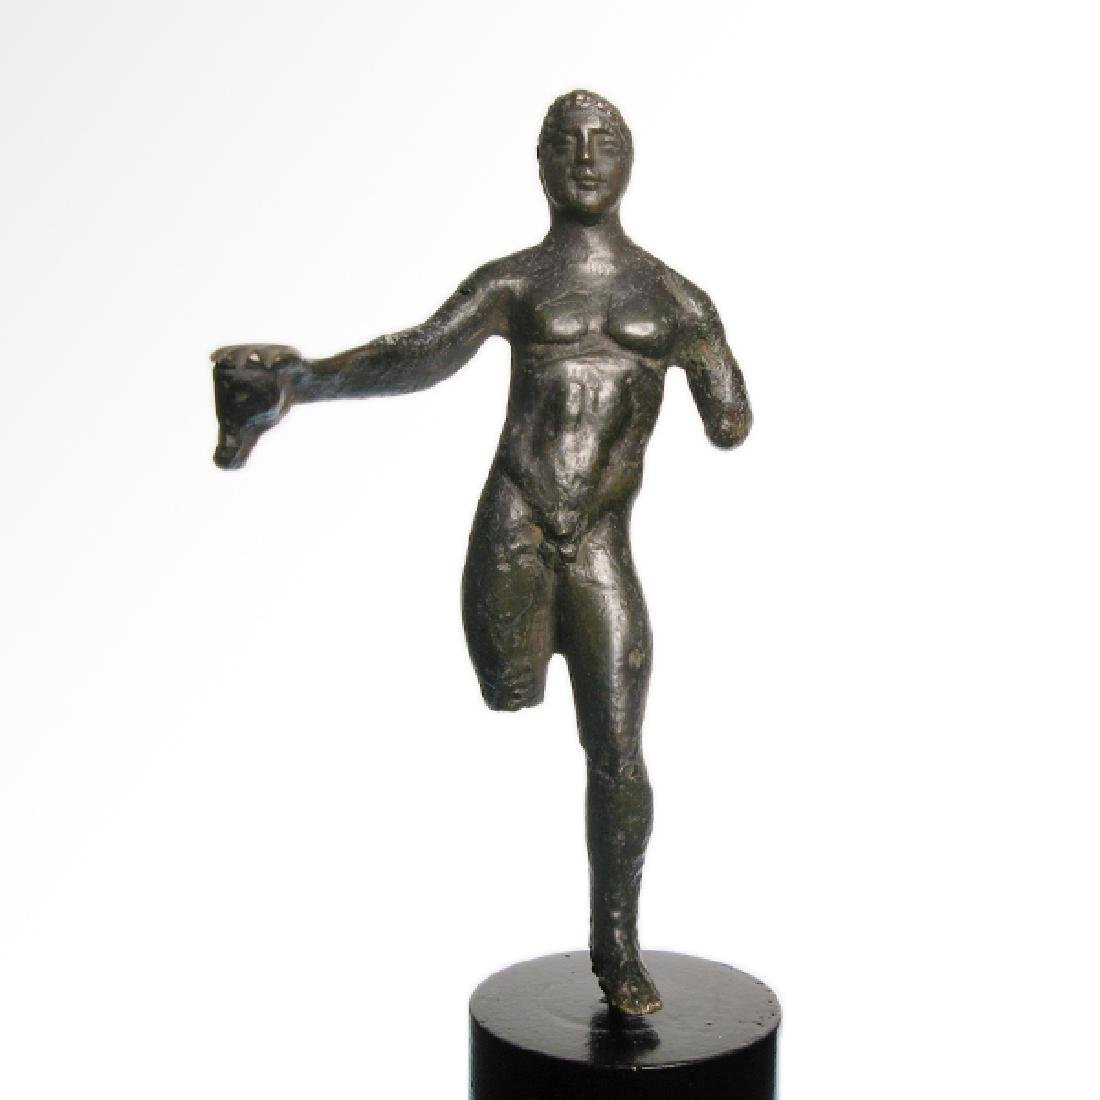 Etruscan Bronze Figure of an Athlete, c. 3rd-2nd